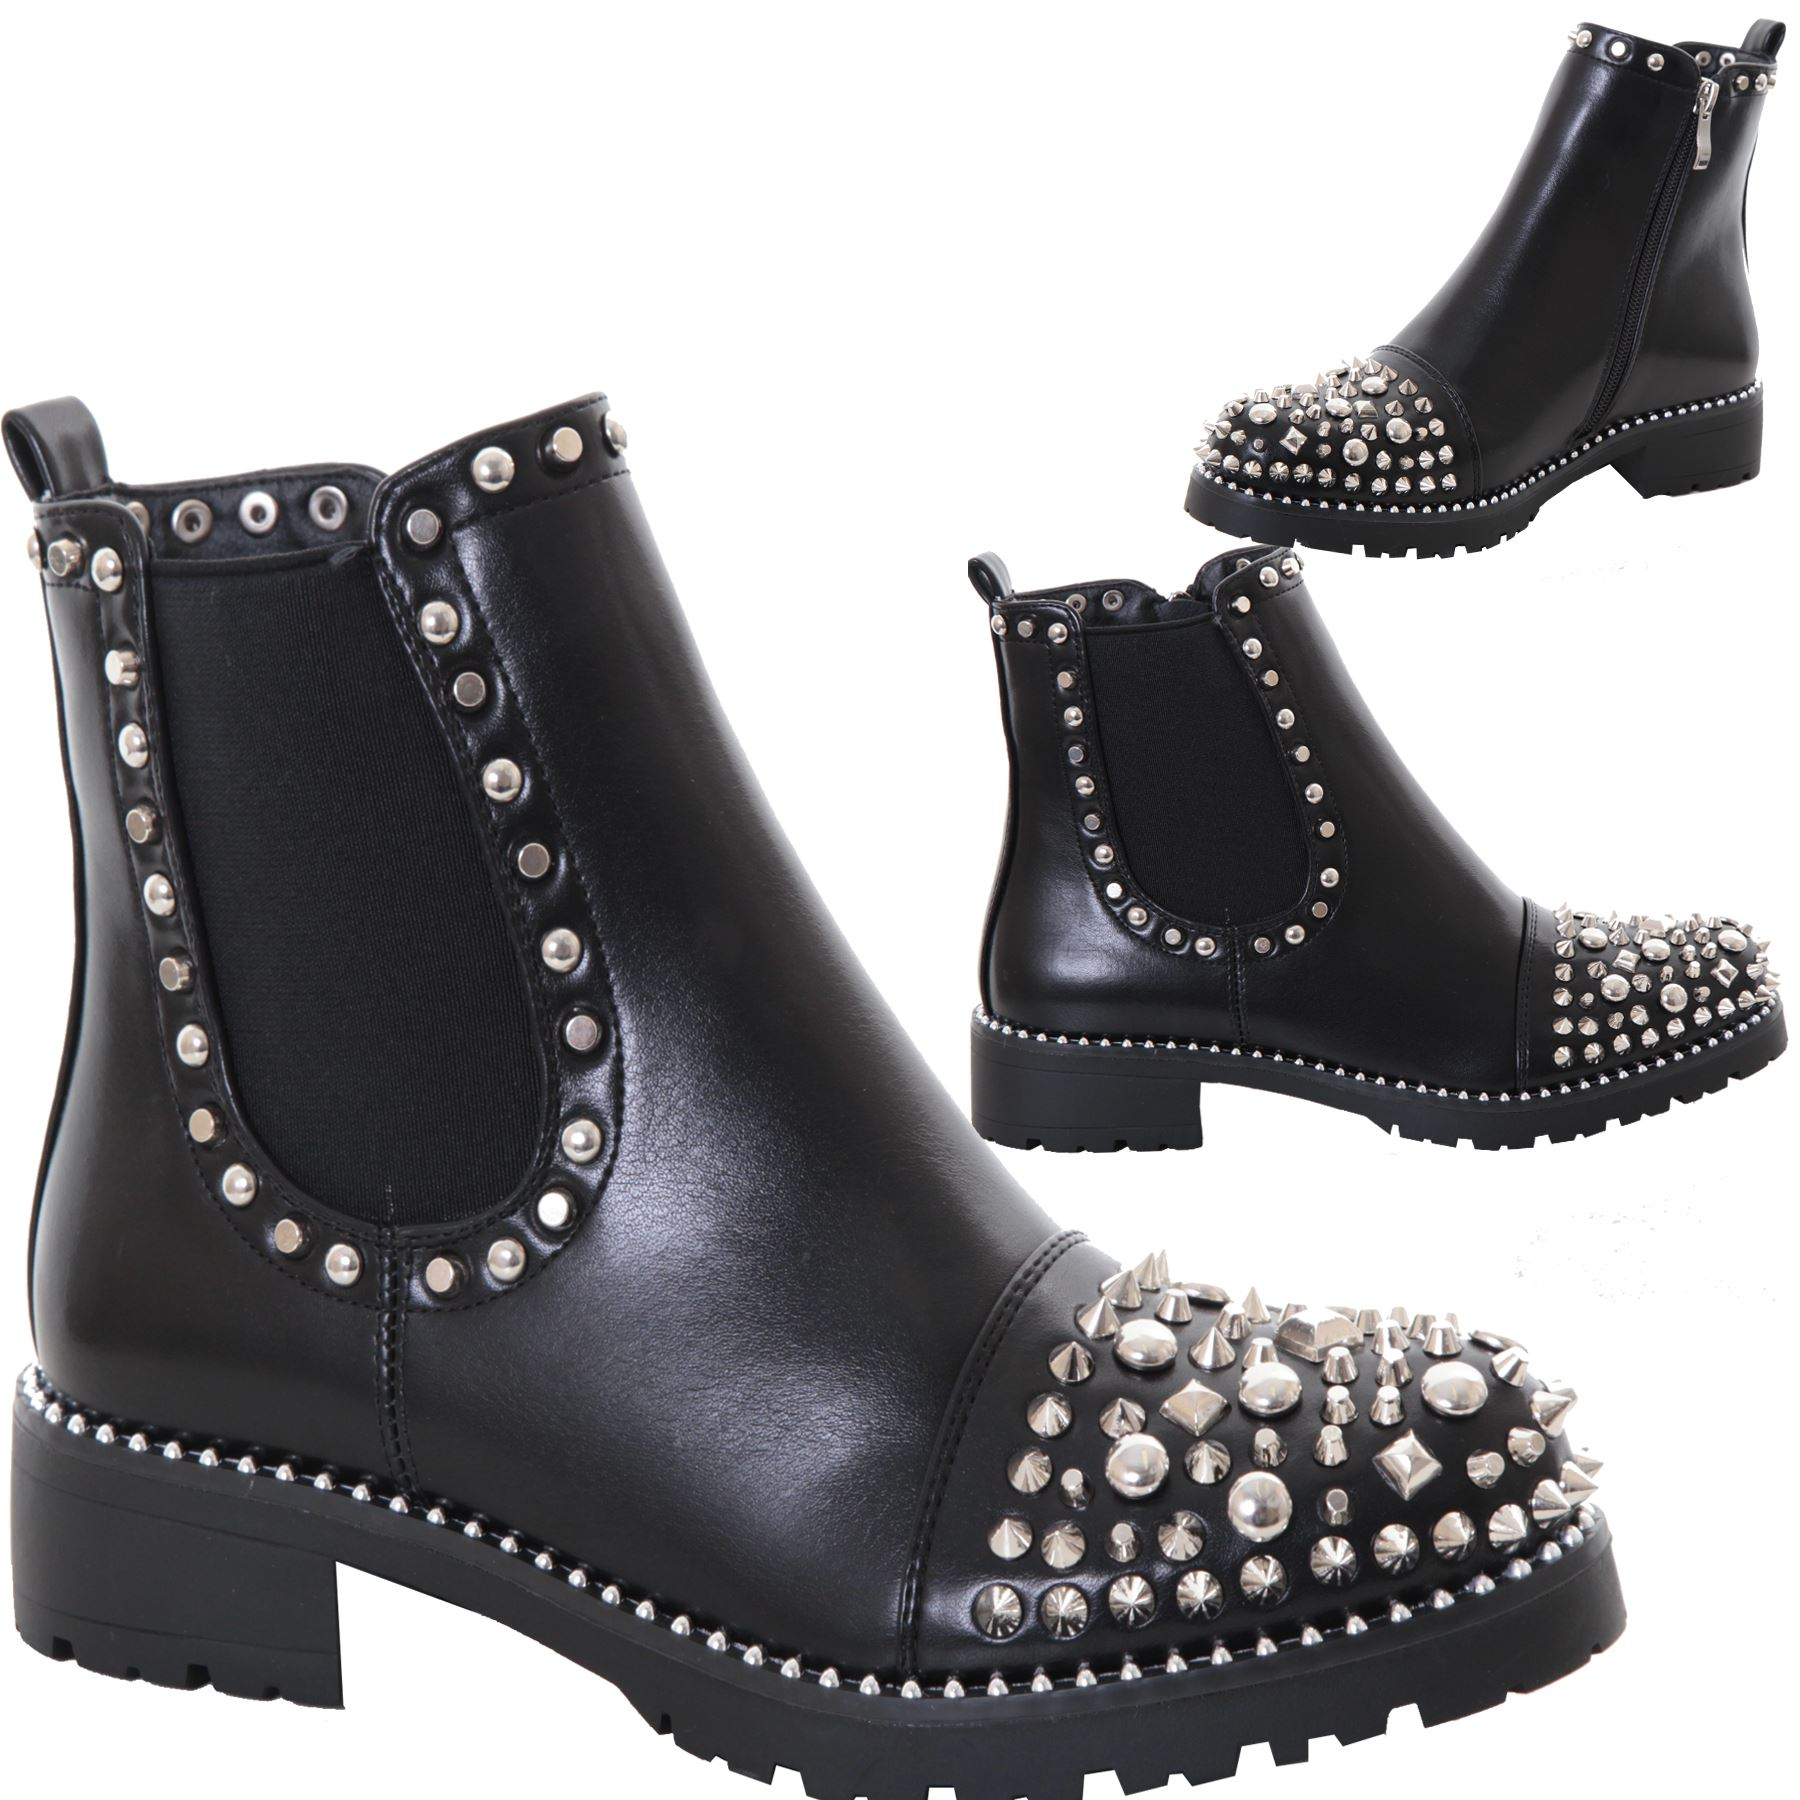 8e7fd0254fa Details about Ladies Goth Zip Studded Chelsea Gusset Punk Chunky Heel Ankle  Boots Shoes